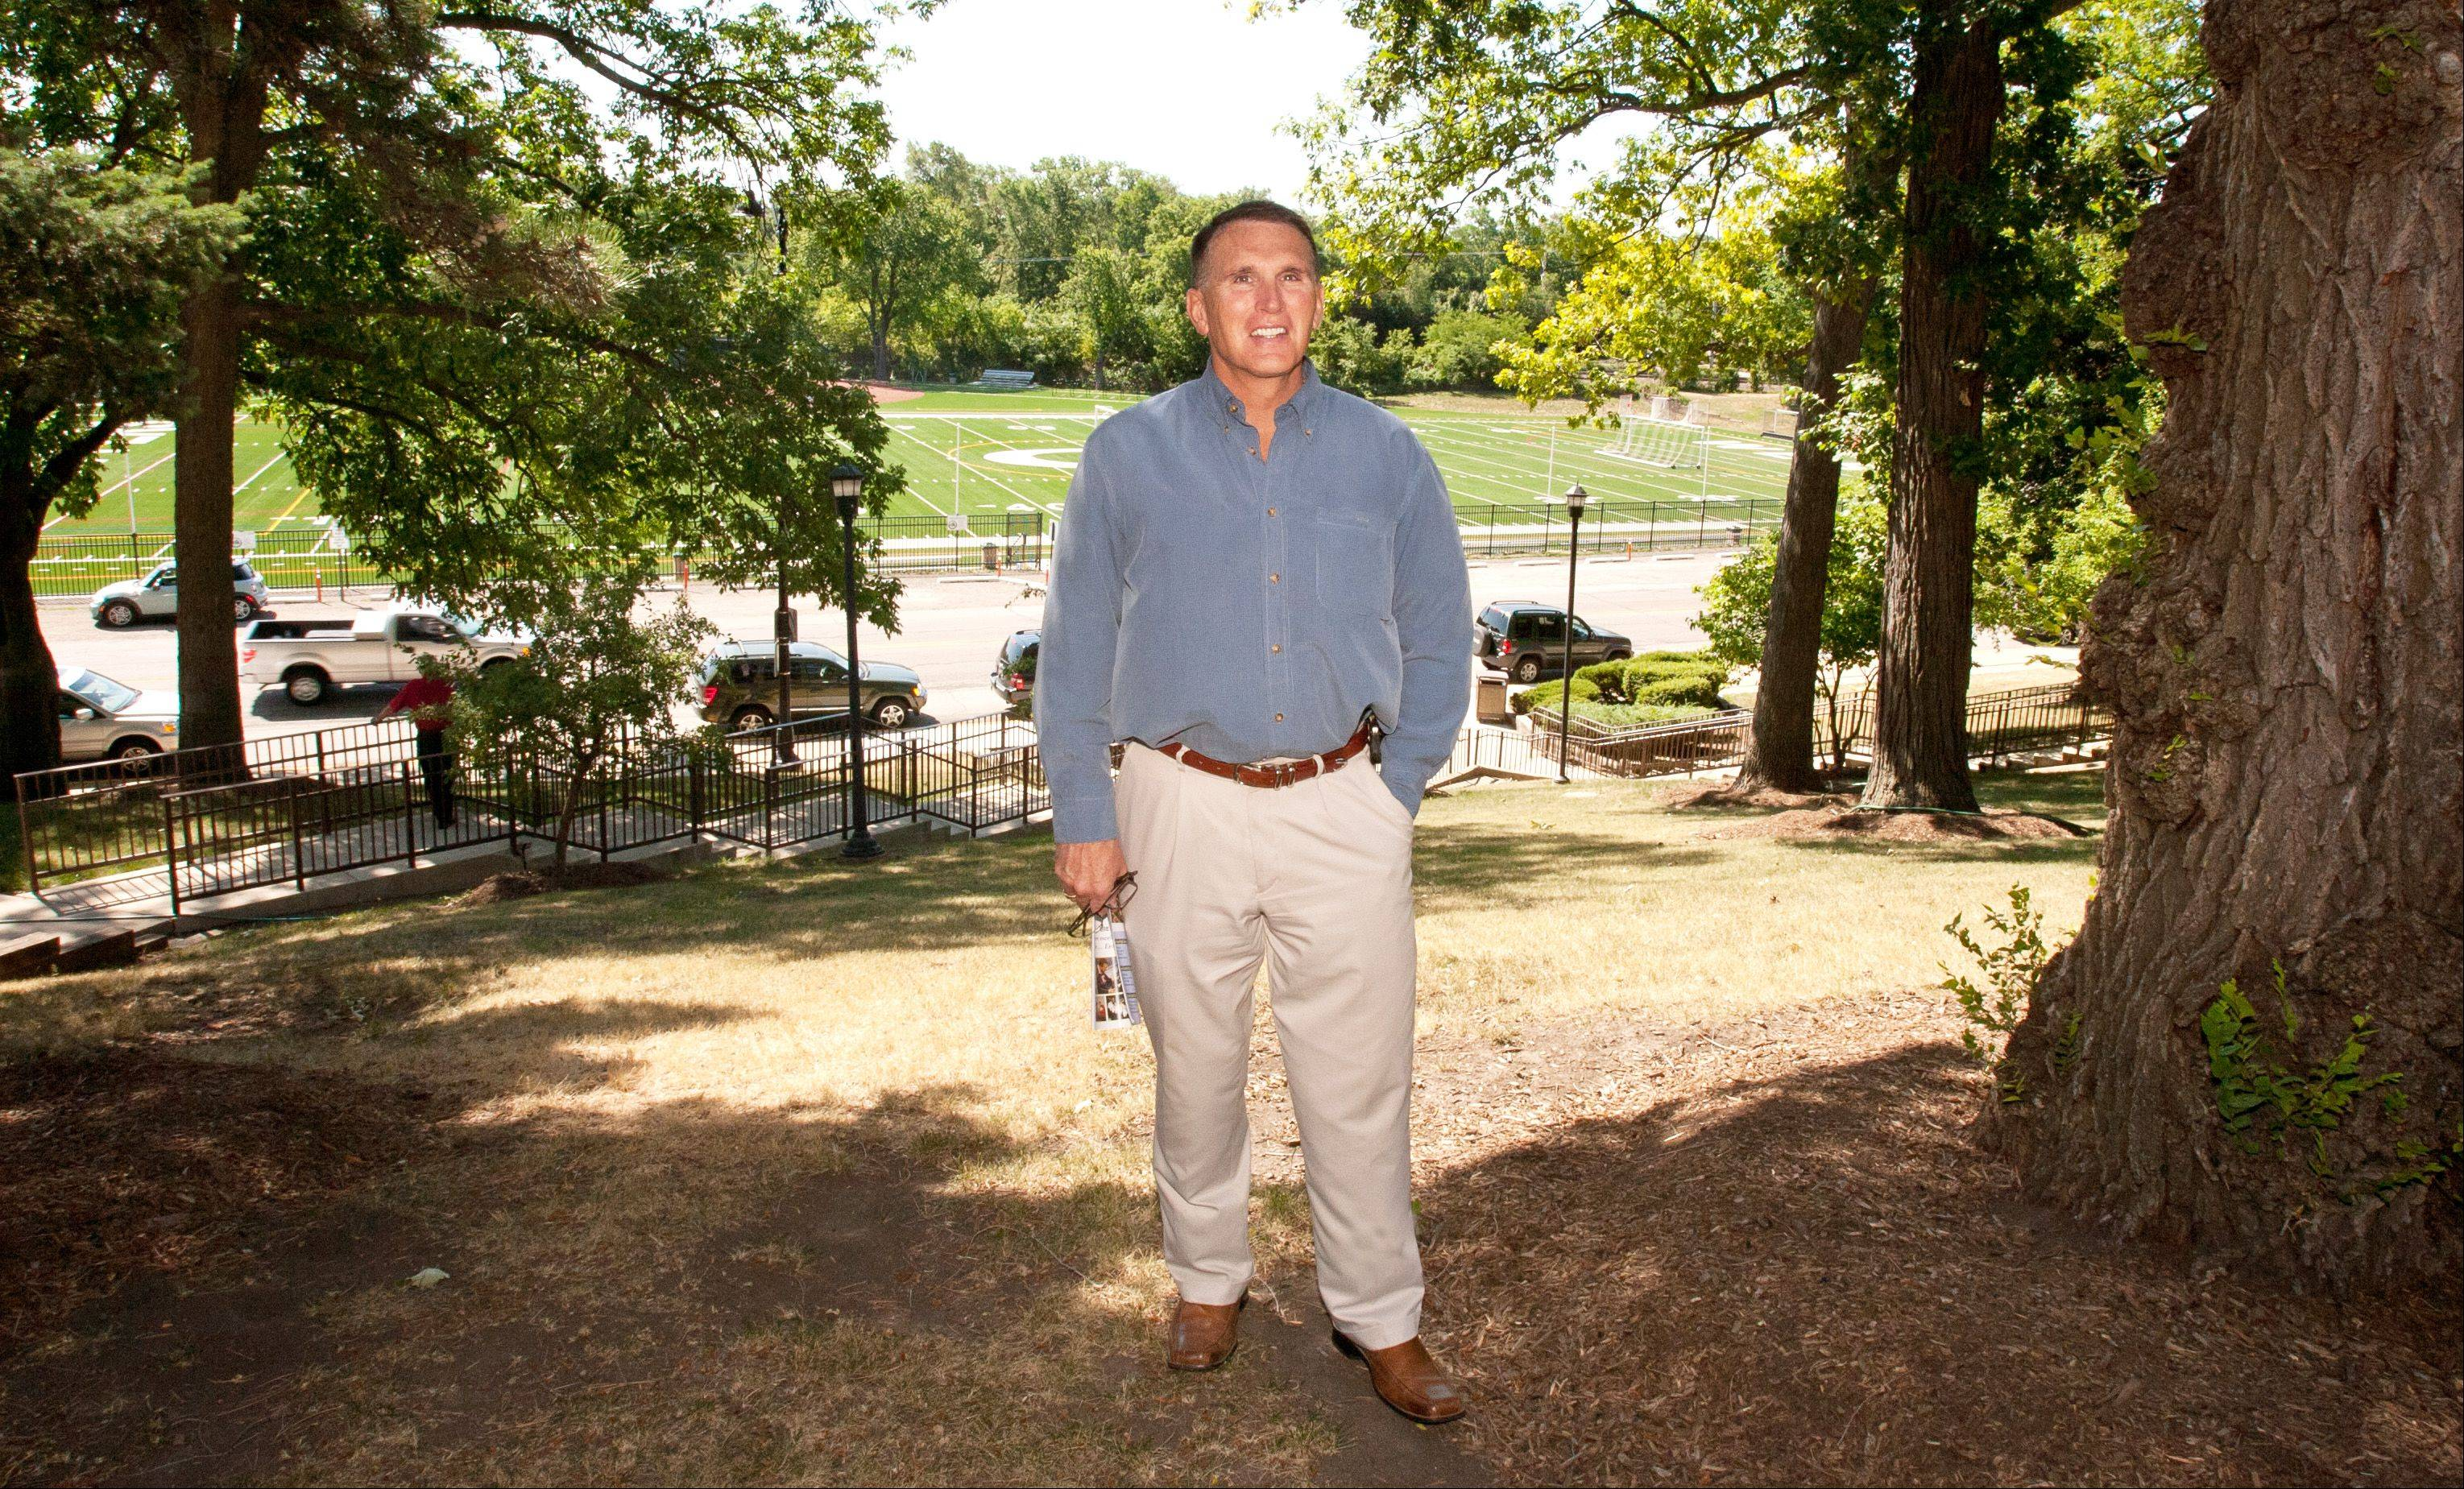 Mike Meissen stepped down last week after six years as superintendent of Glenbard High School District 87. He stands on a hill at Glenbard West overlooking Memorial Field, where his plan to install field lighting garnered opposition from neighbors.